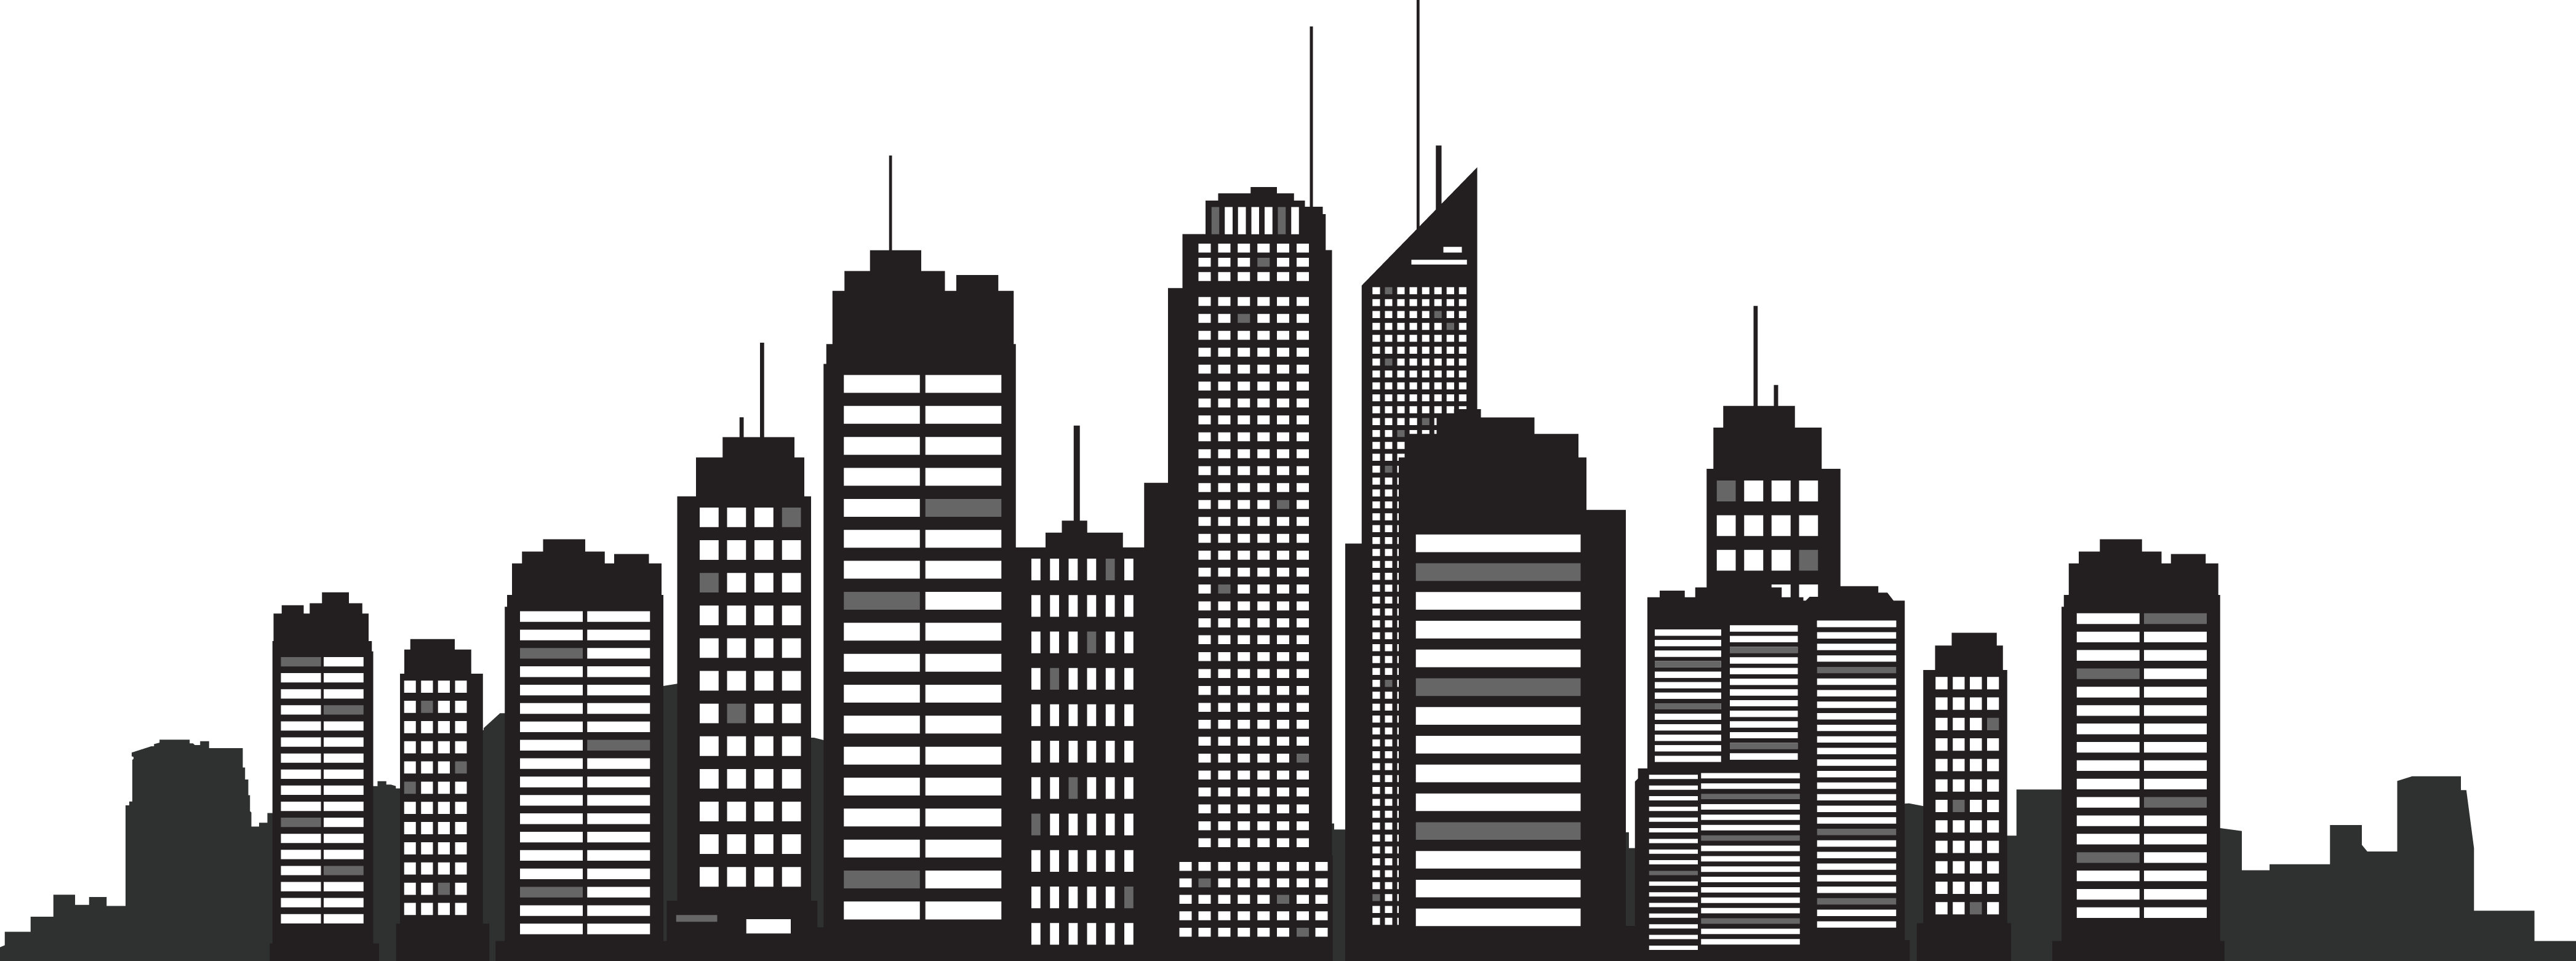 Building silhouette png. New york city skyline